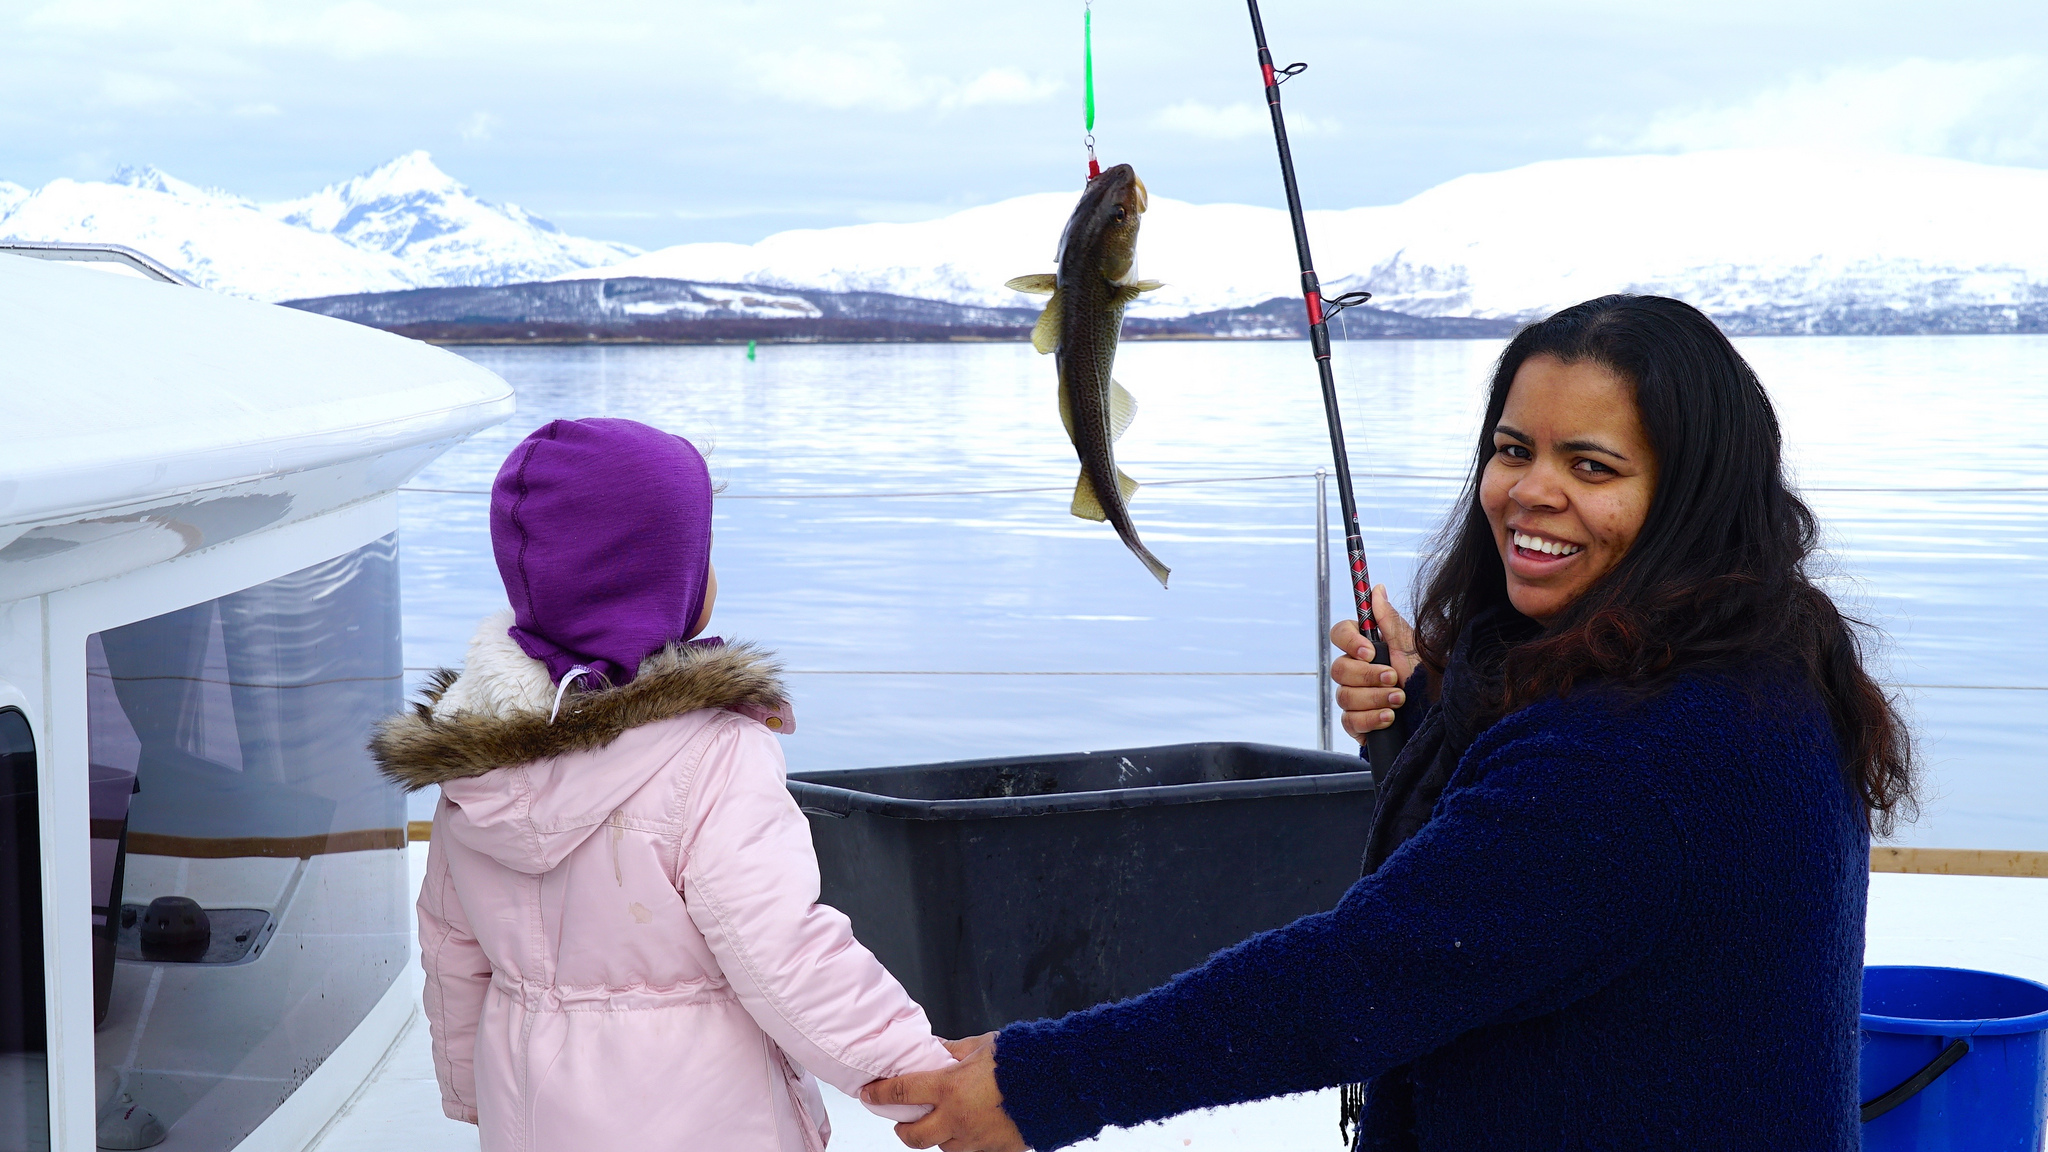 #Fishingtrip #Tromso #Boat